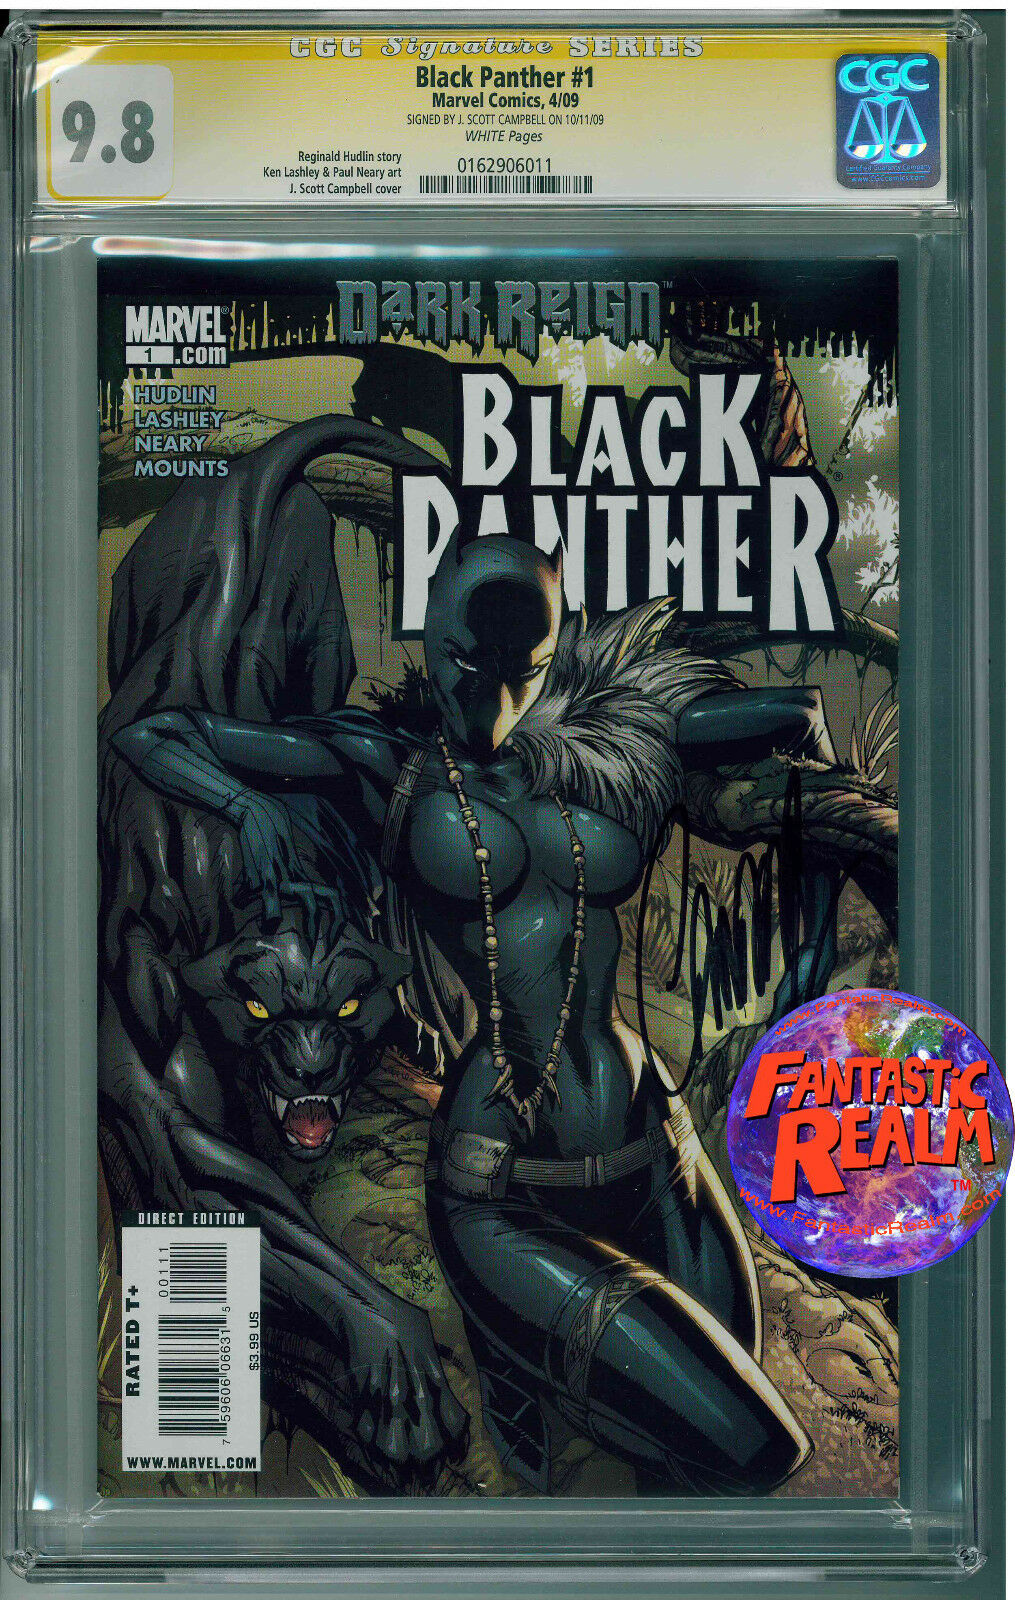 DARK REIGN BLACK PANTHER #1 CGC 9.8 SIGNATURE J. SCOTT CAMPBELL MARVEL COMICS